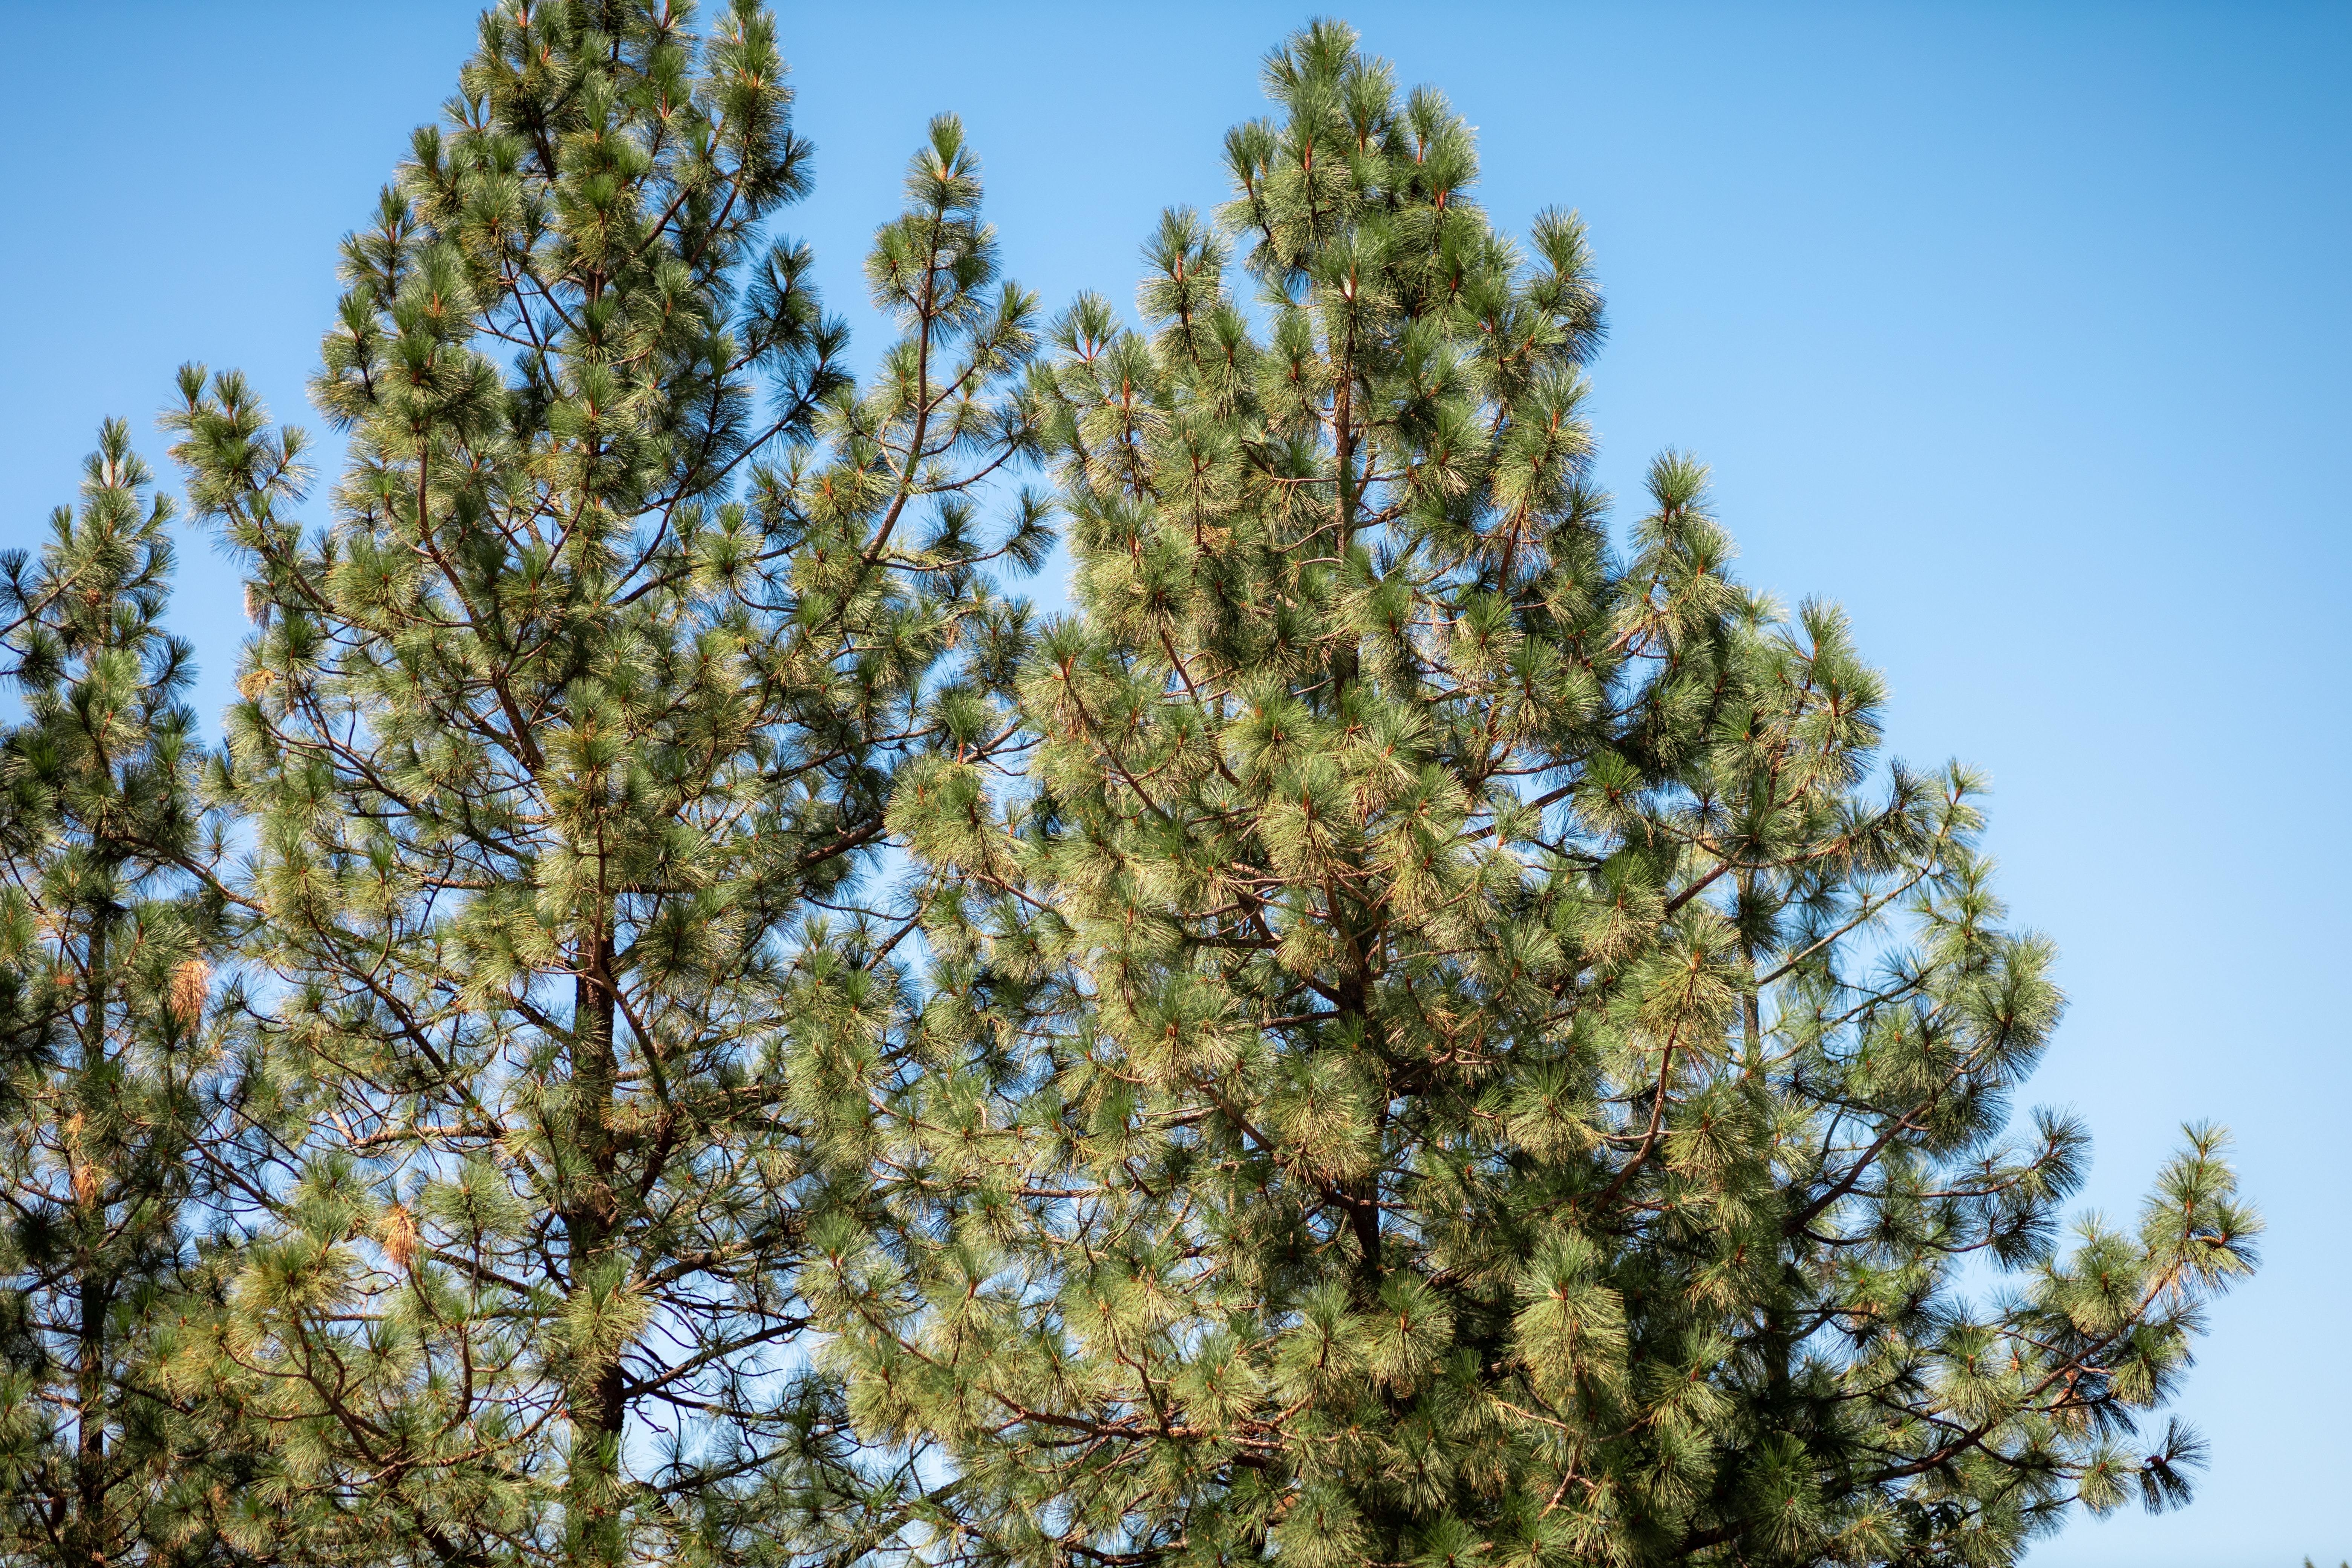 A picture of Pine trees